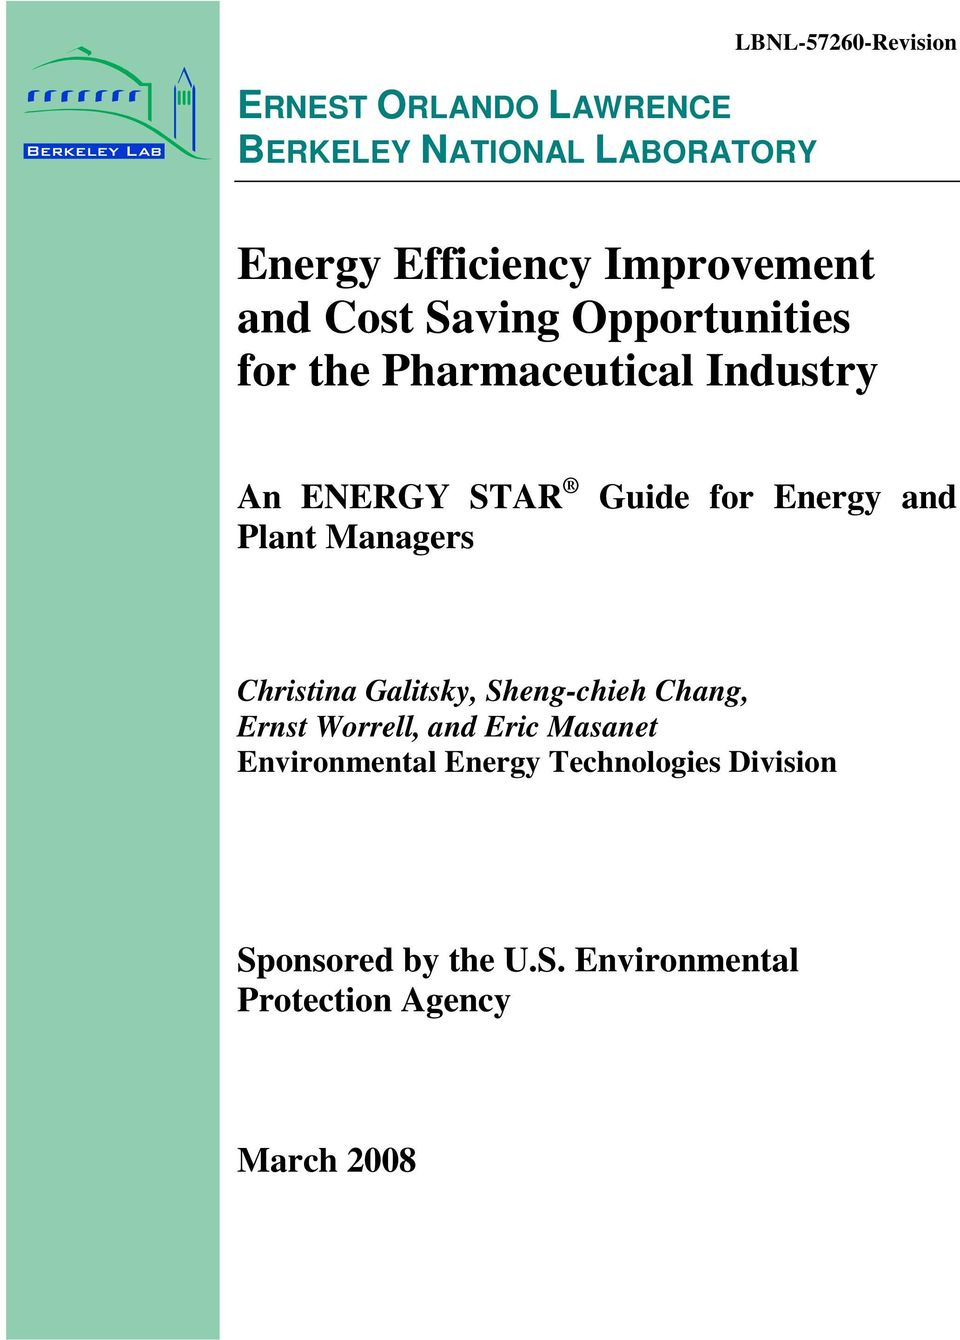 Managers Guide for Energy and Christina Galitsky, Sheng-chieh Chang, Ernst Worrell, and Eric